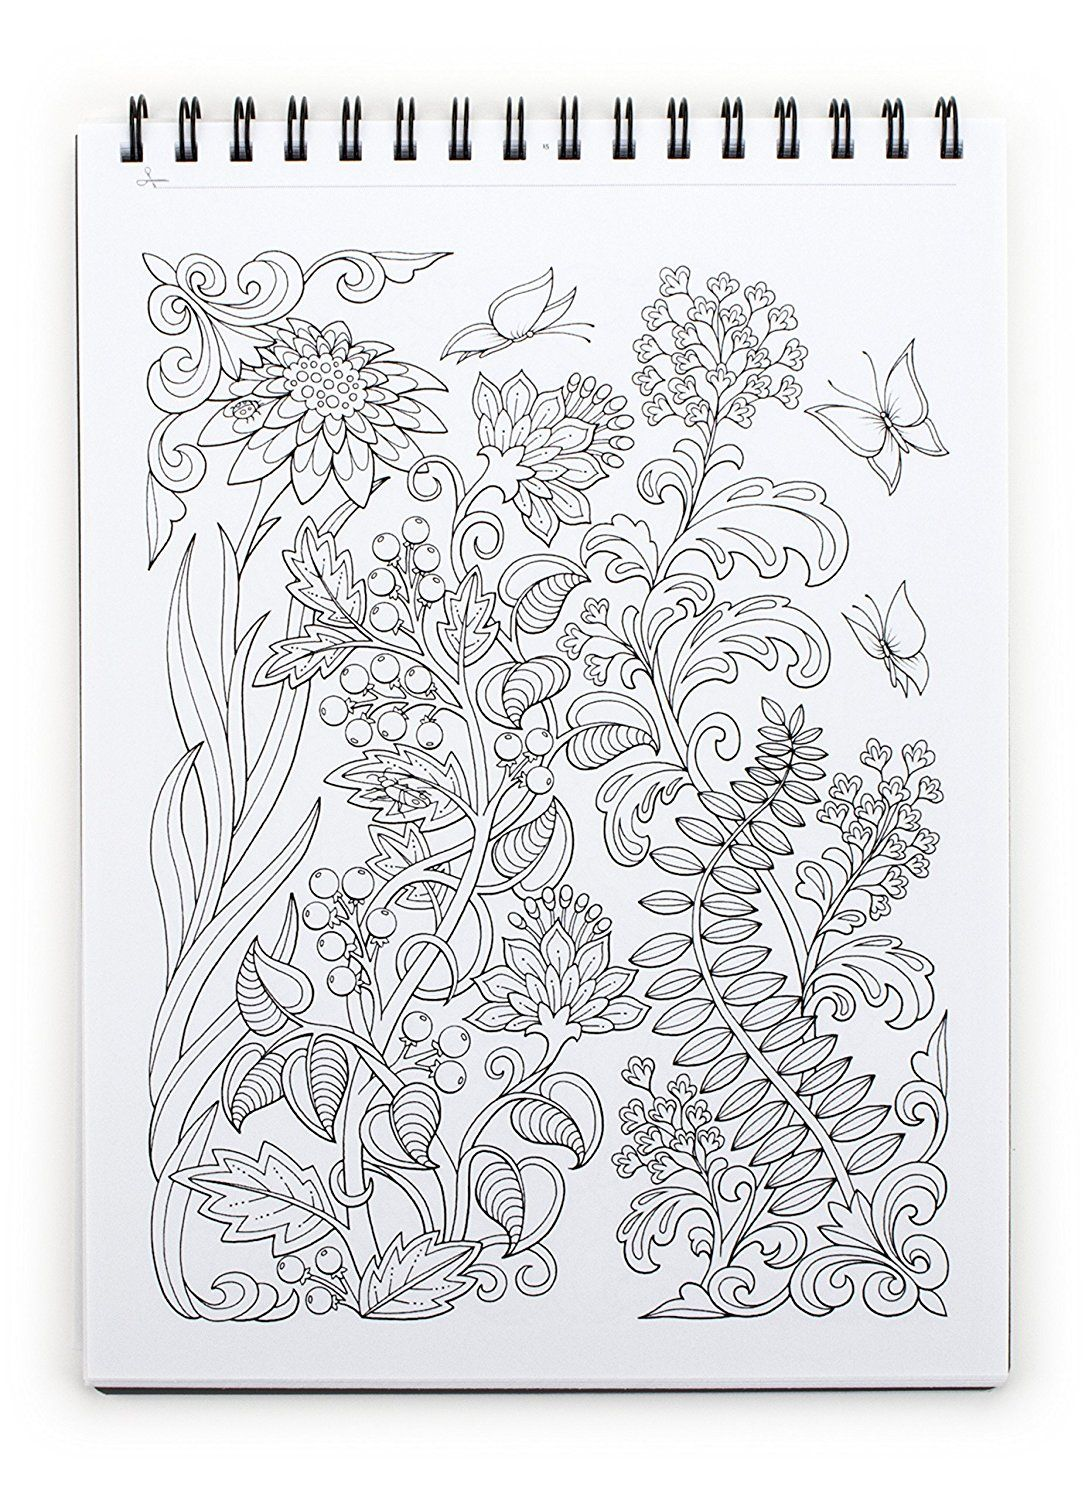 Amazon Com Garden Paths And Forest Trails Coloring Book Large 8 62 X 11 75 Inches Inc And Kathryn Marlin Act Color Coloring Books Printed Shower Curtain